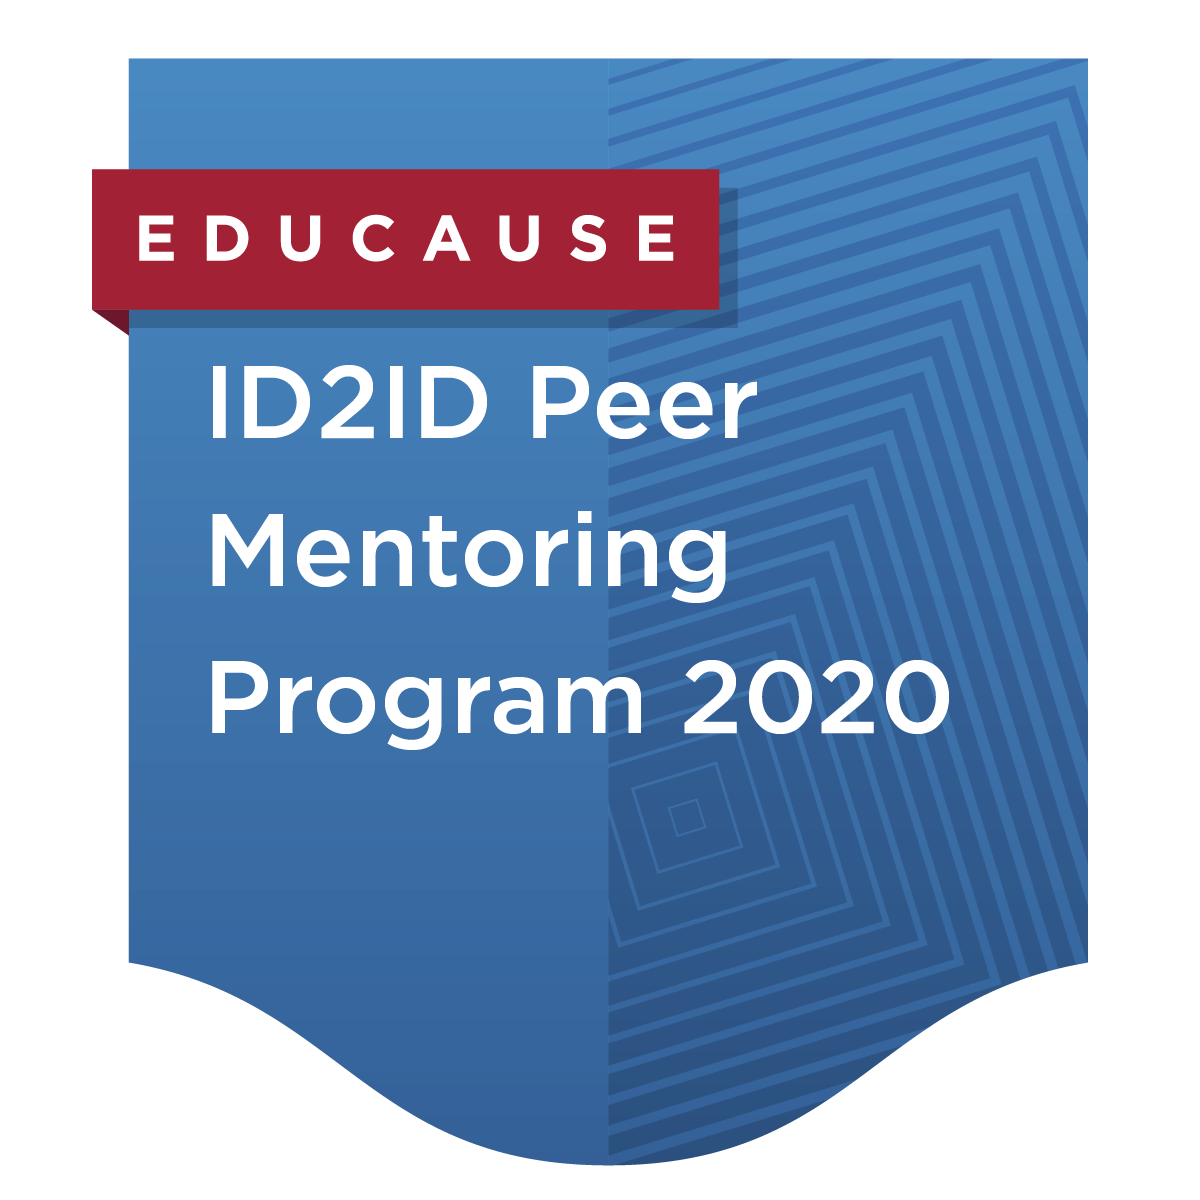 ID2ID Peer Mentoring Program 2020